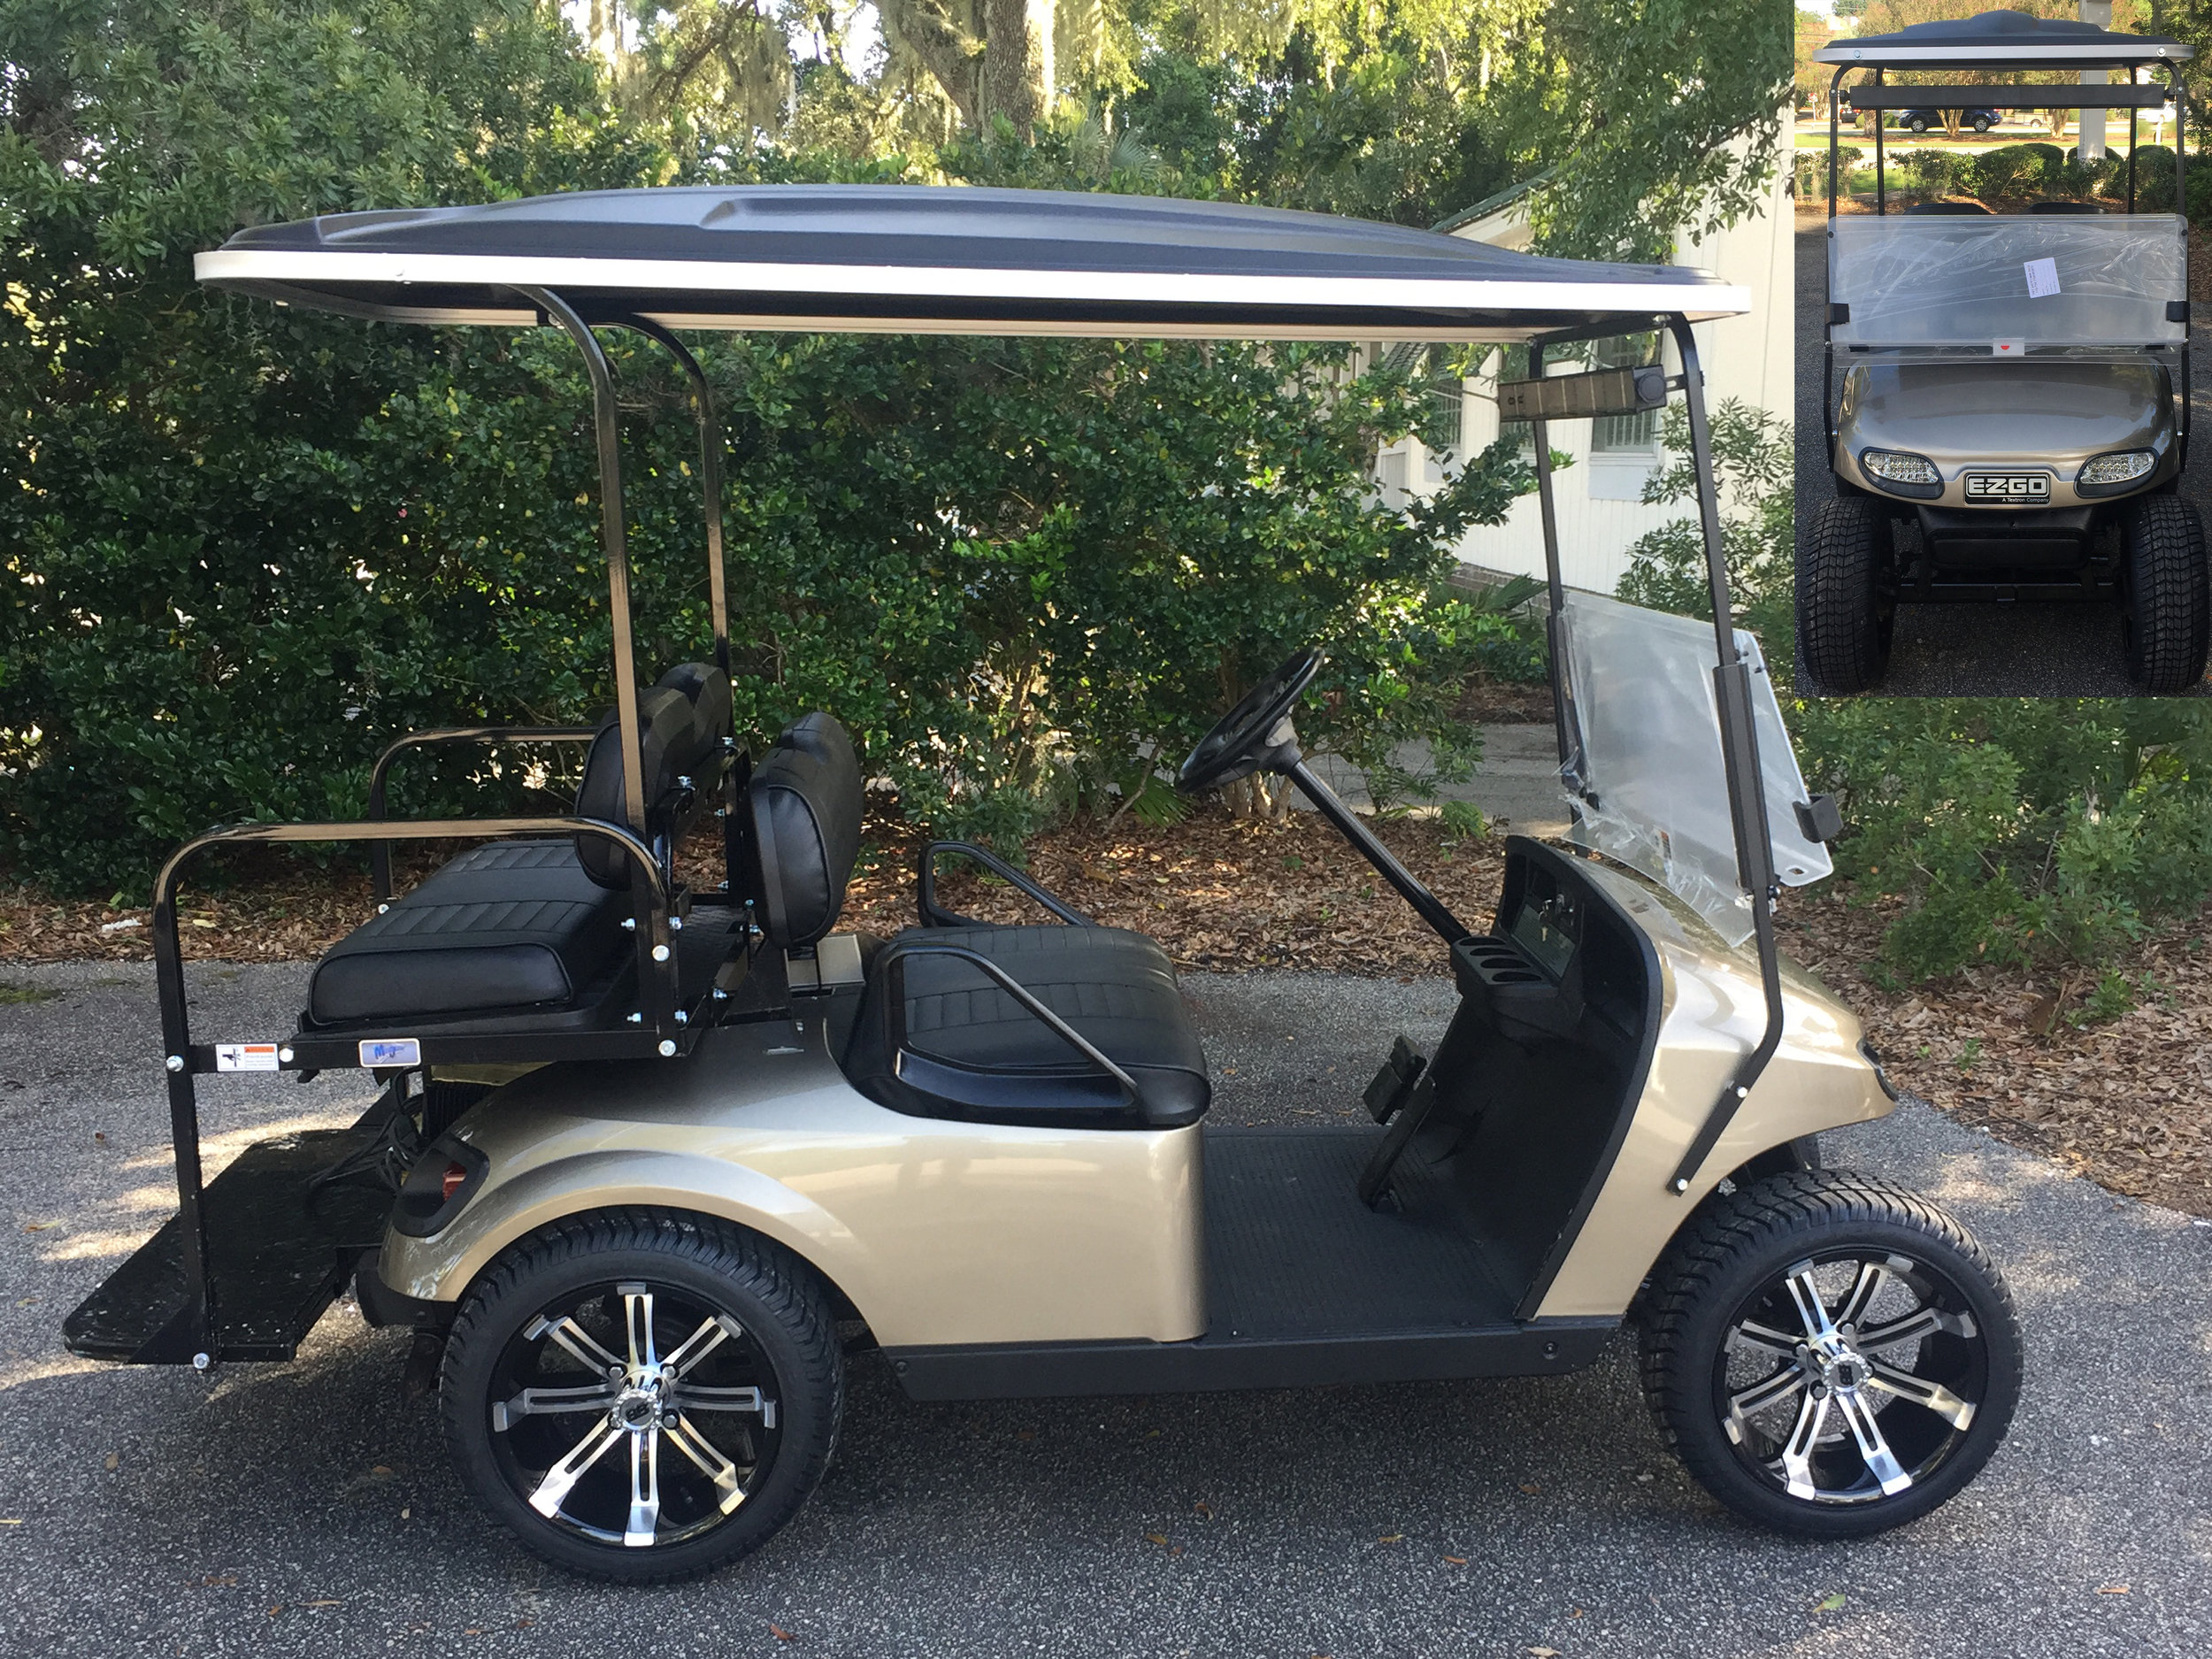 2015 Almond (Pewter) EZGO Cart ——- In Stock  Black seats, black extended top, new (2019) batteries 48vt (6-8), high speed code, LED lights, Lo Pro tires, mirror, and flip windshield